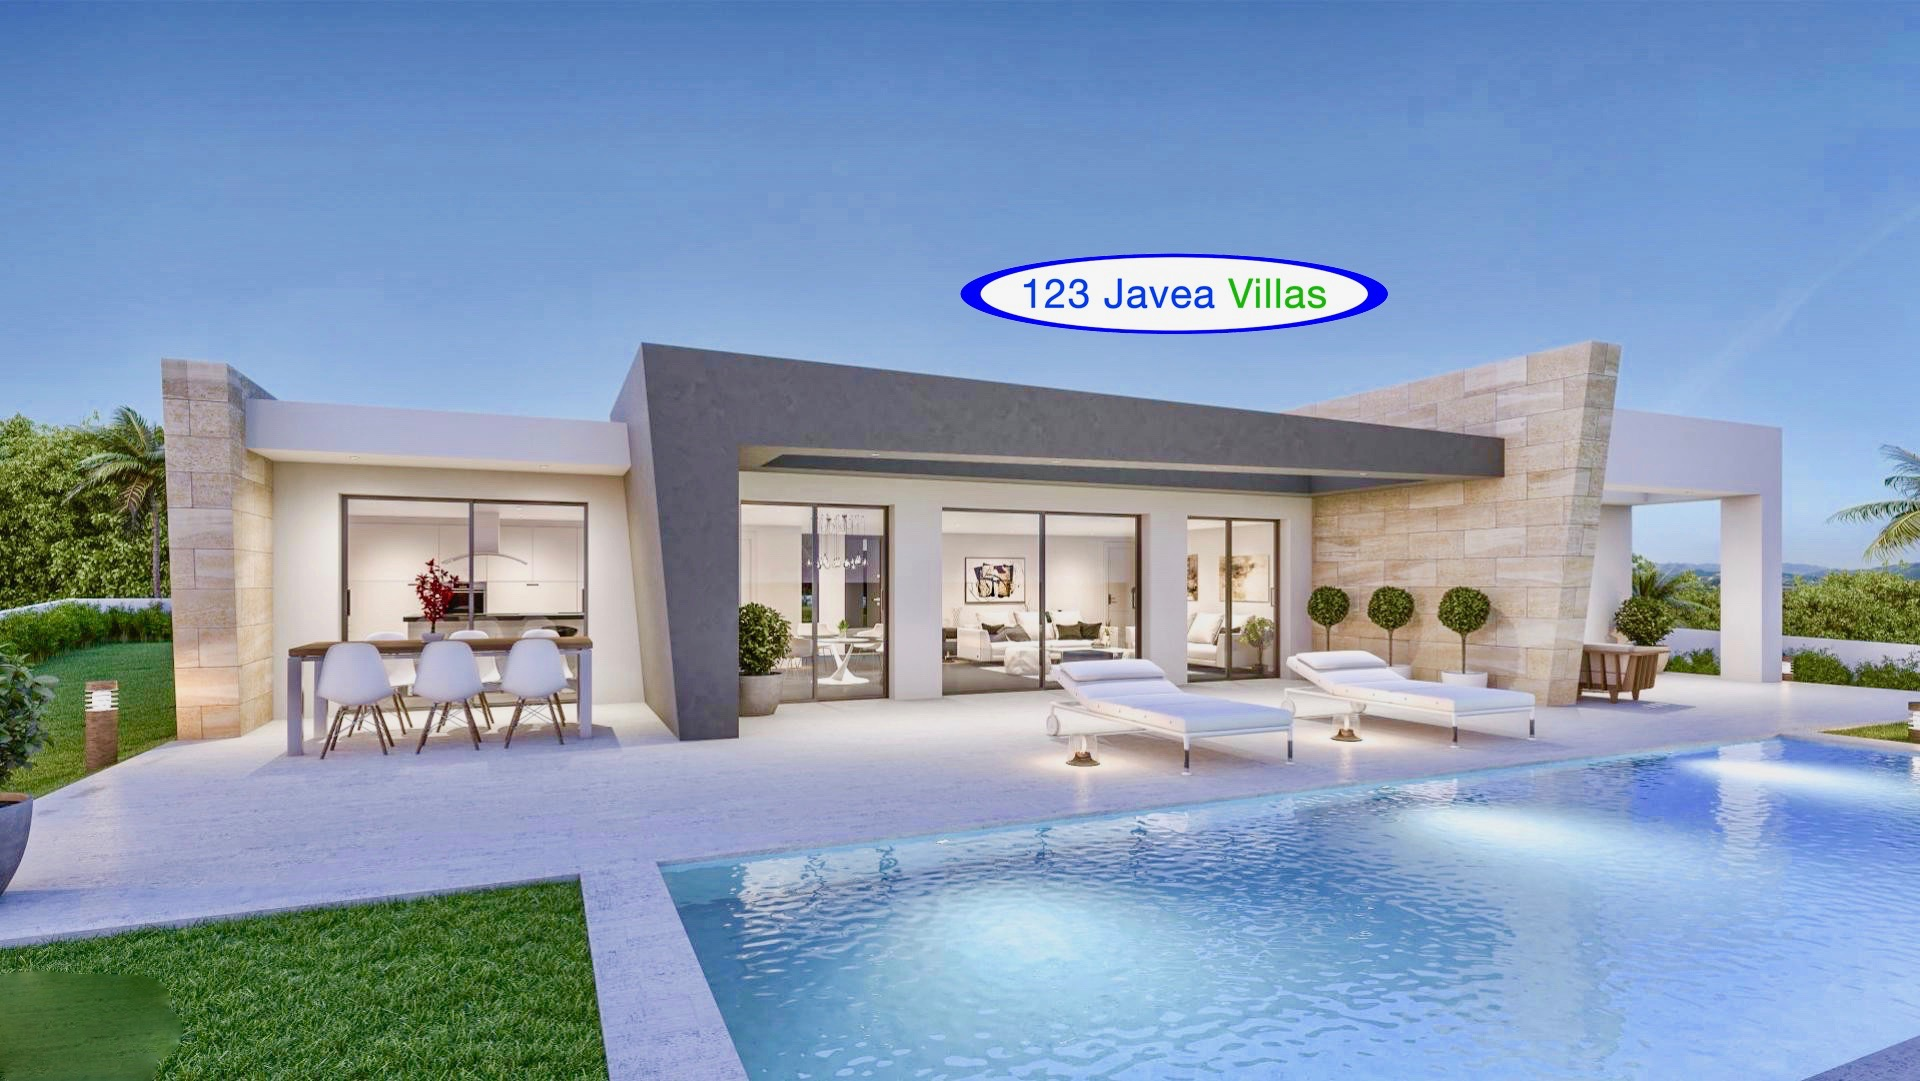 Javea Spain New Construction Villa For Sale 123 Javea Villas